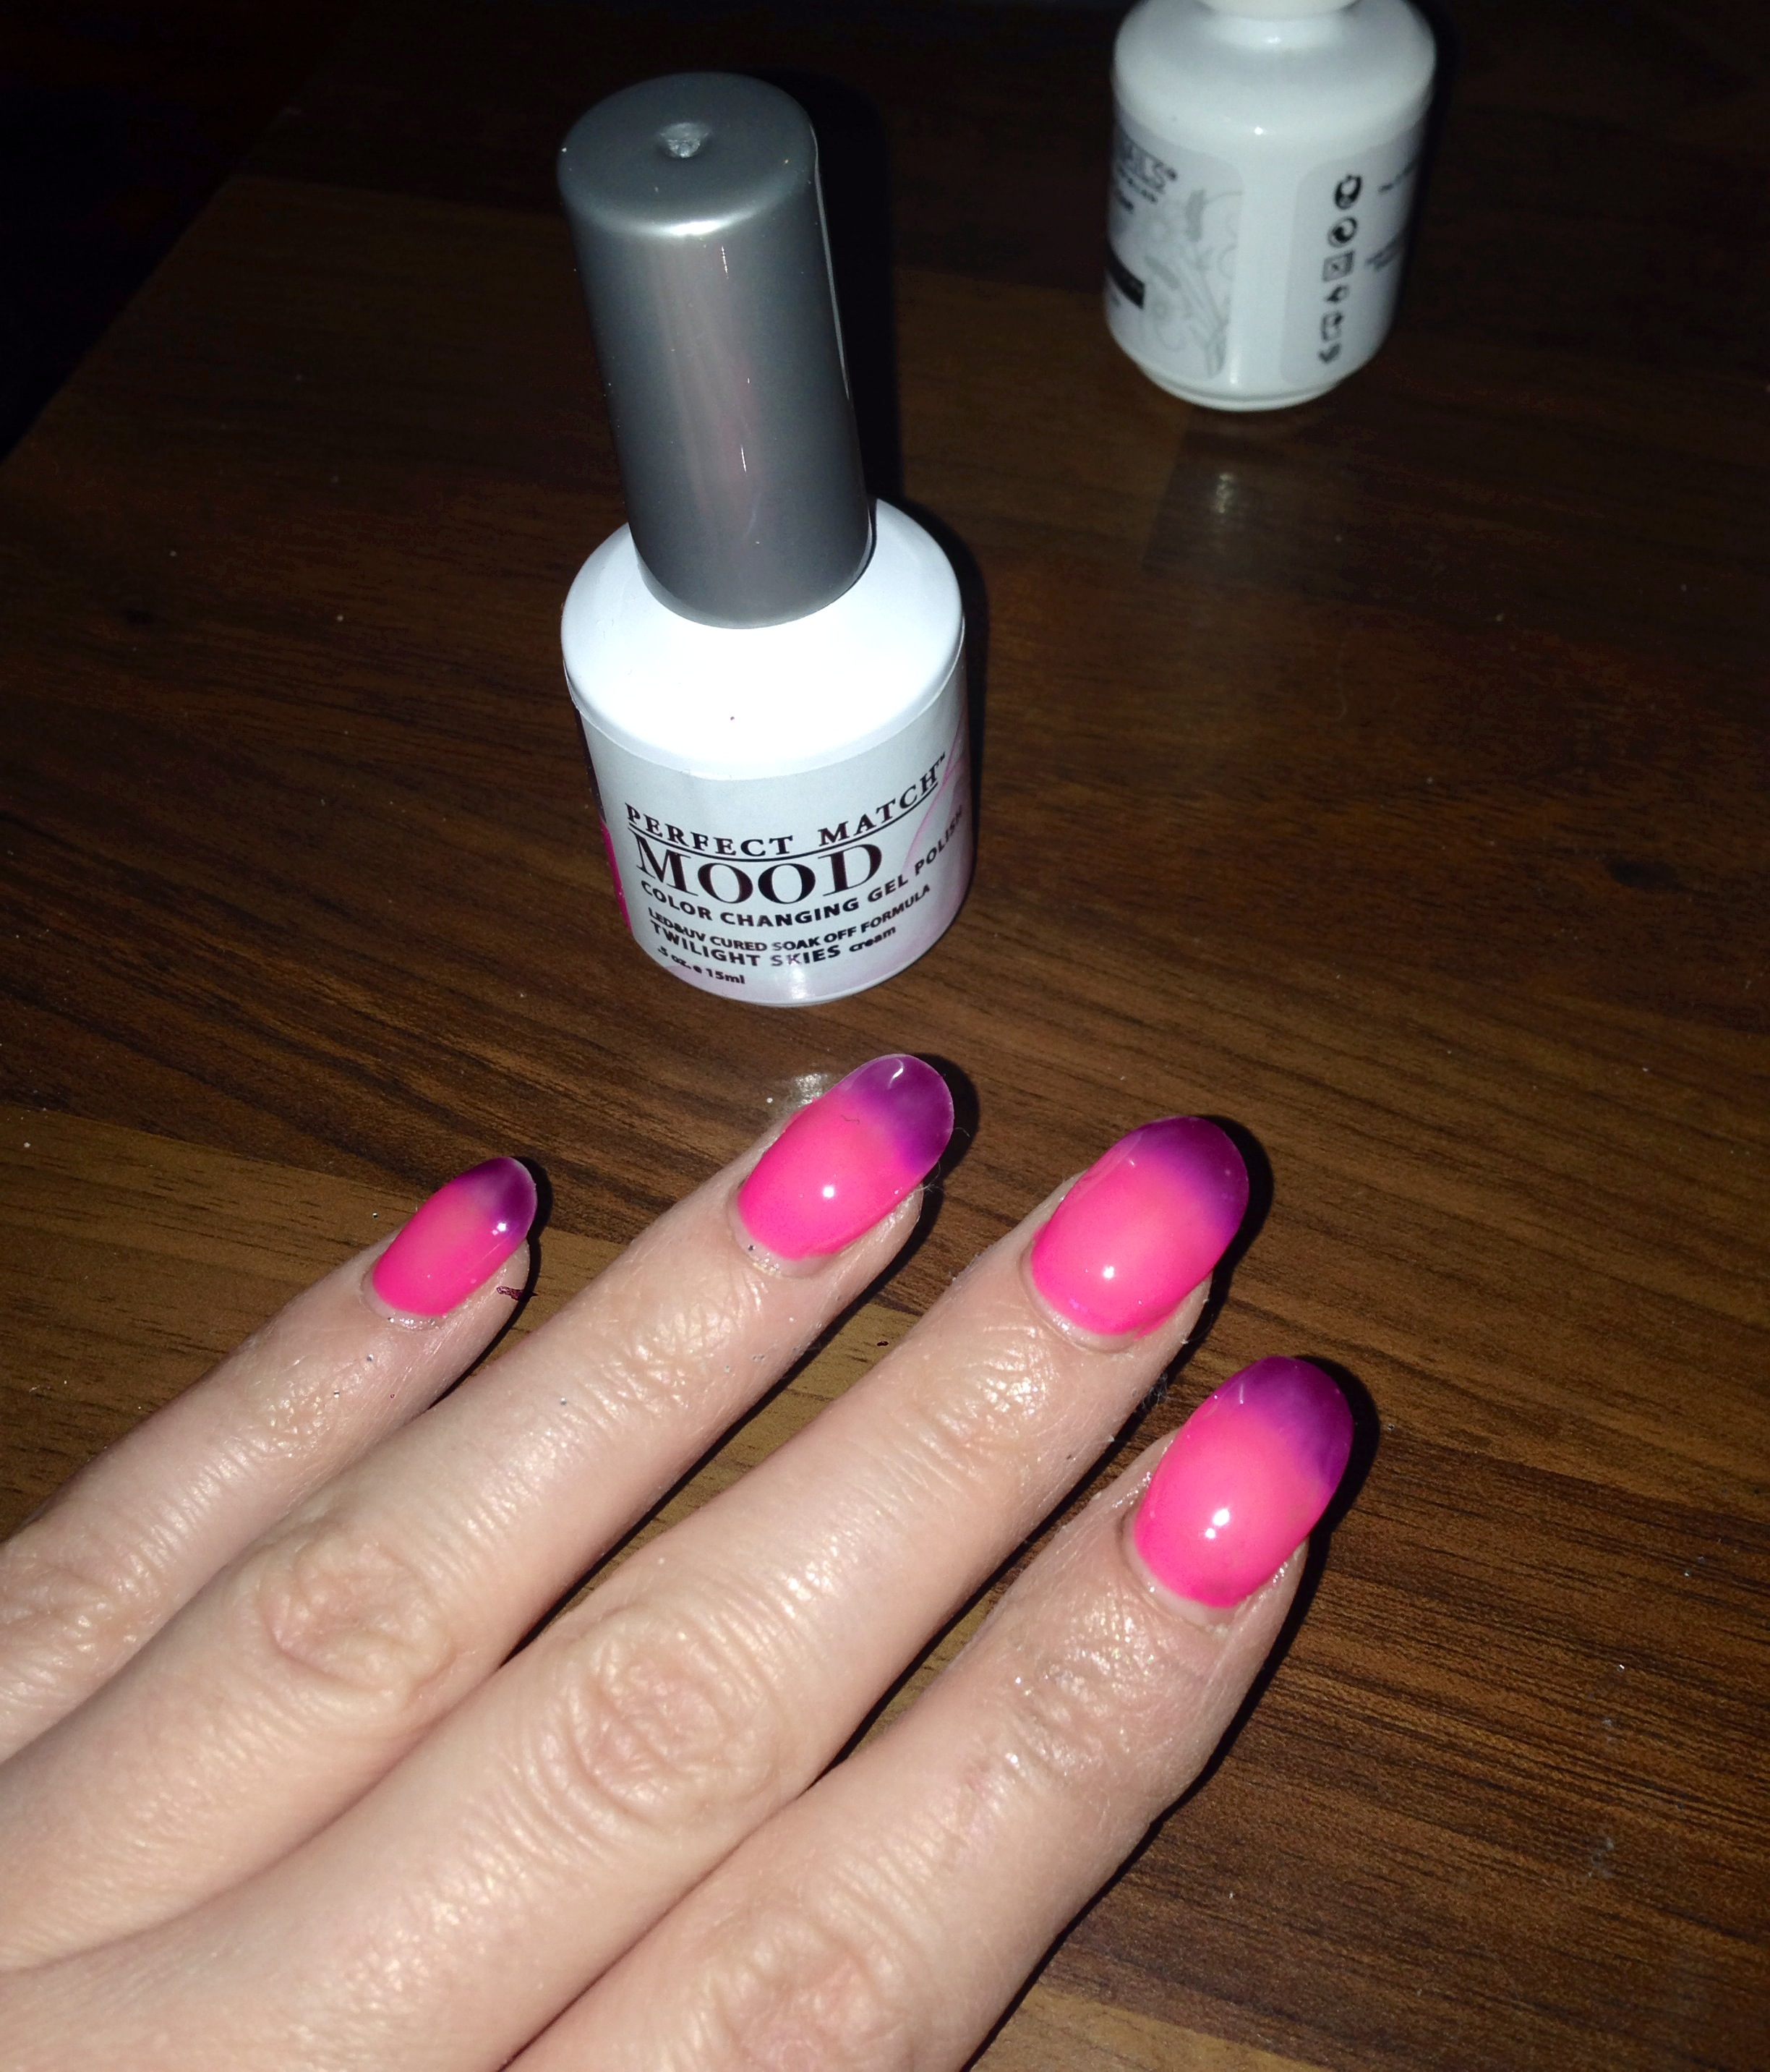 Futuristic Nails - Perfect Match Colour Changing Mood Gel Polish ...